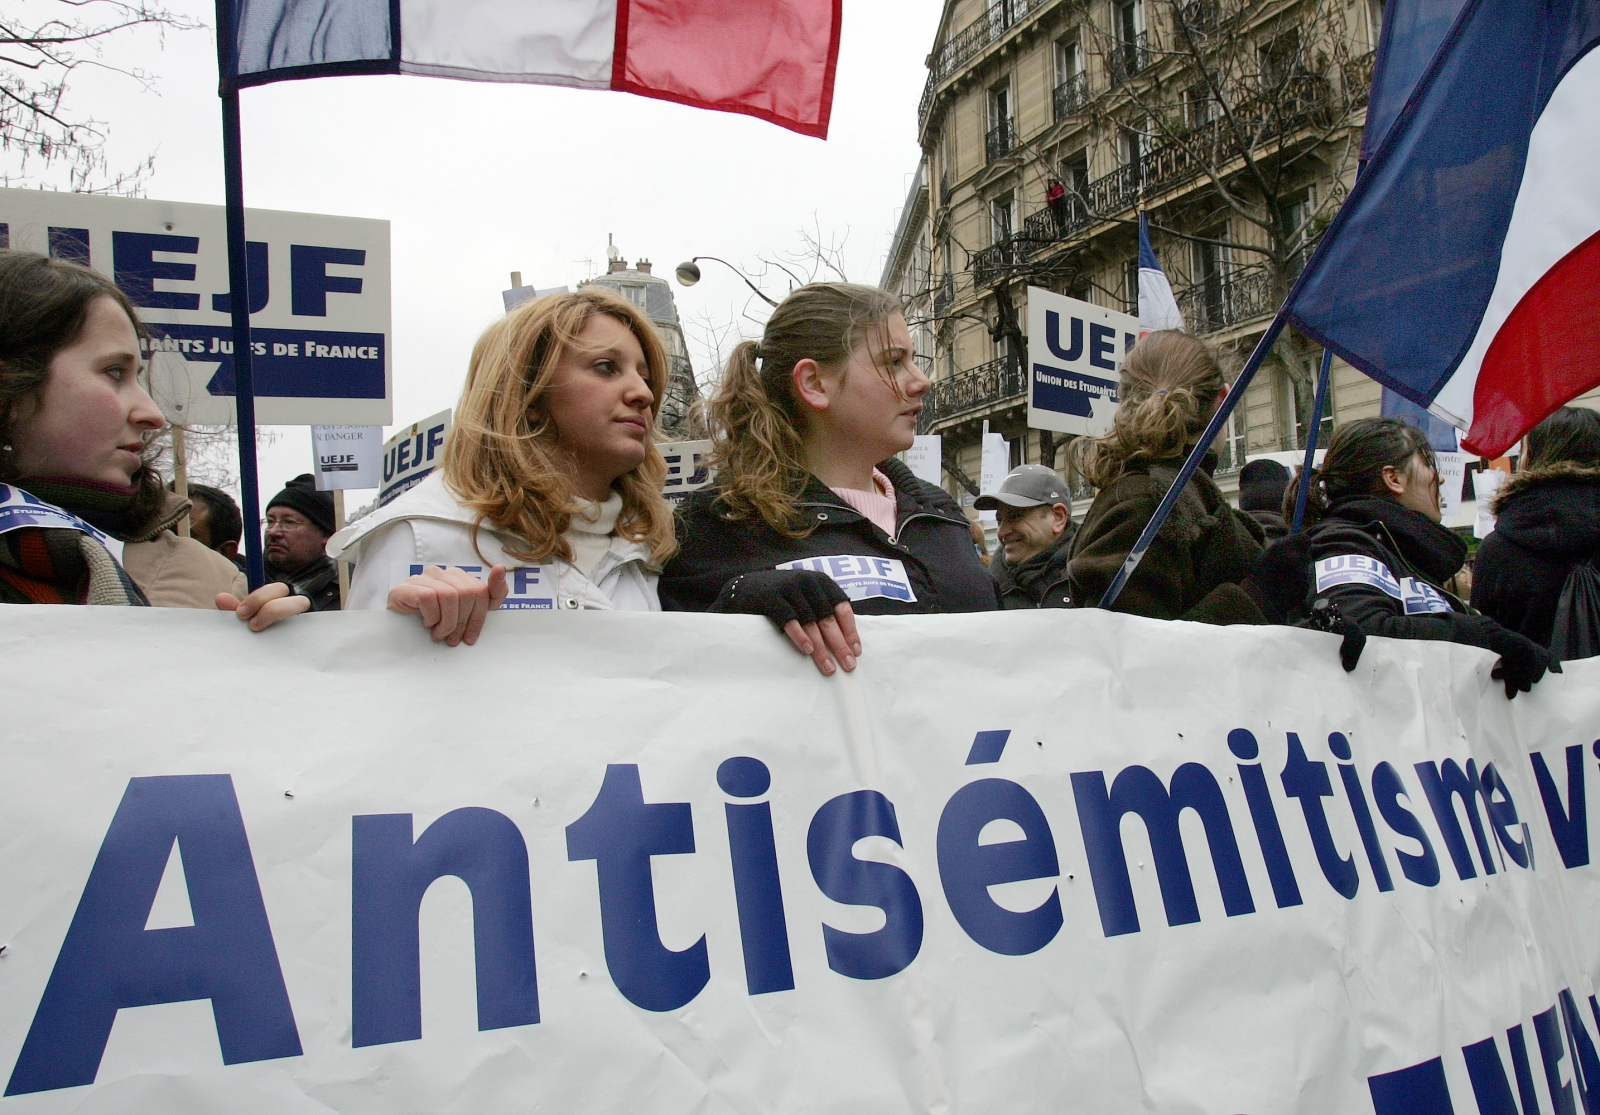 Leaders of the French Jewish community have linked Roland Dumas's comments to anti-Semitic rhetoric used by National Front leader Le Pen